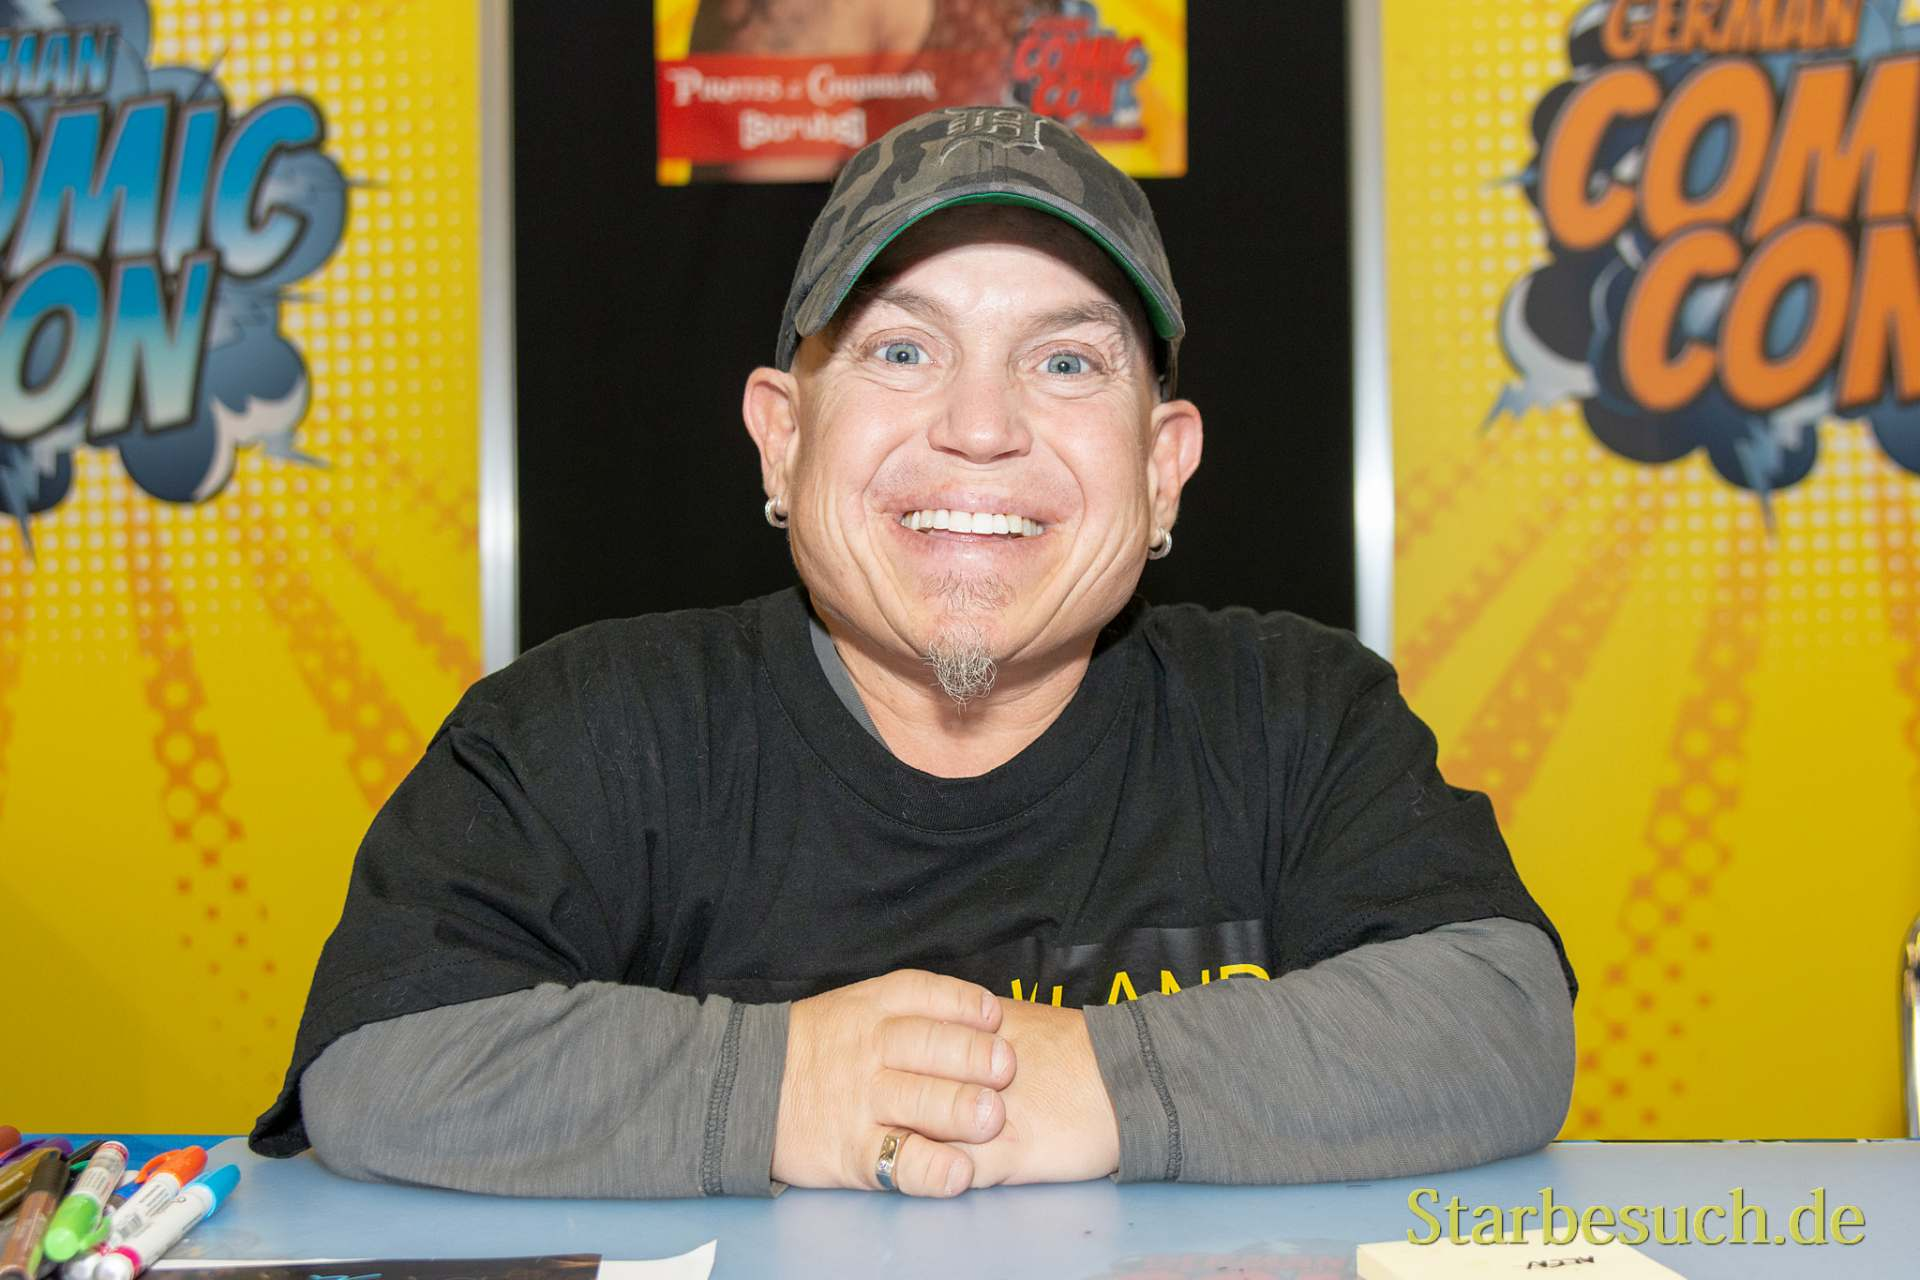 DORTMUND, GERMANY - December 1st 2018: Martin Klebba (*1969, American actor) at German Comic Con Dortmund, a two day fan convention